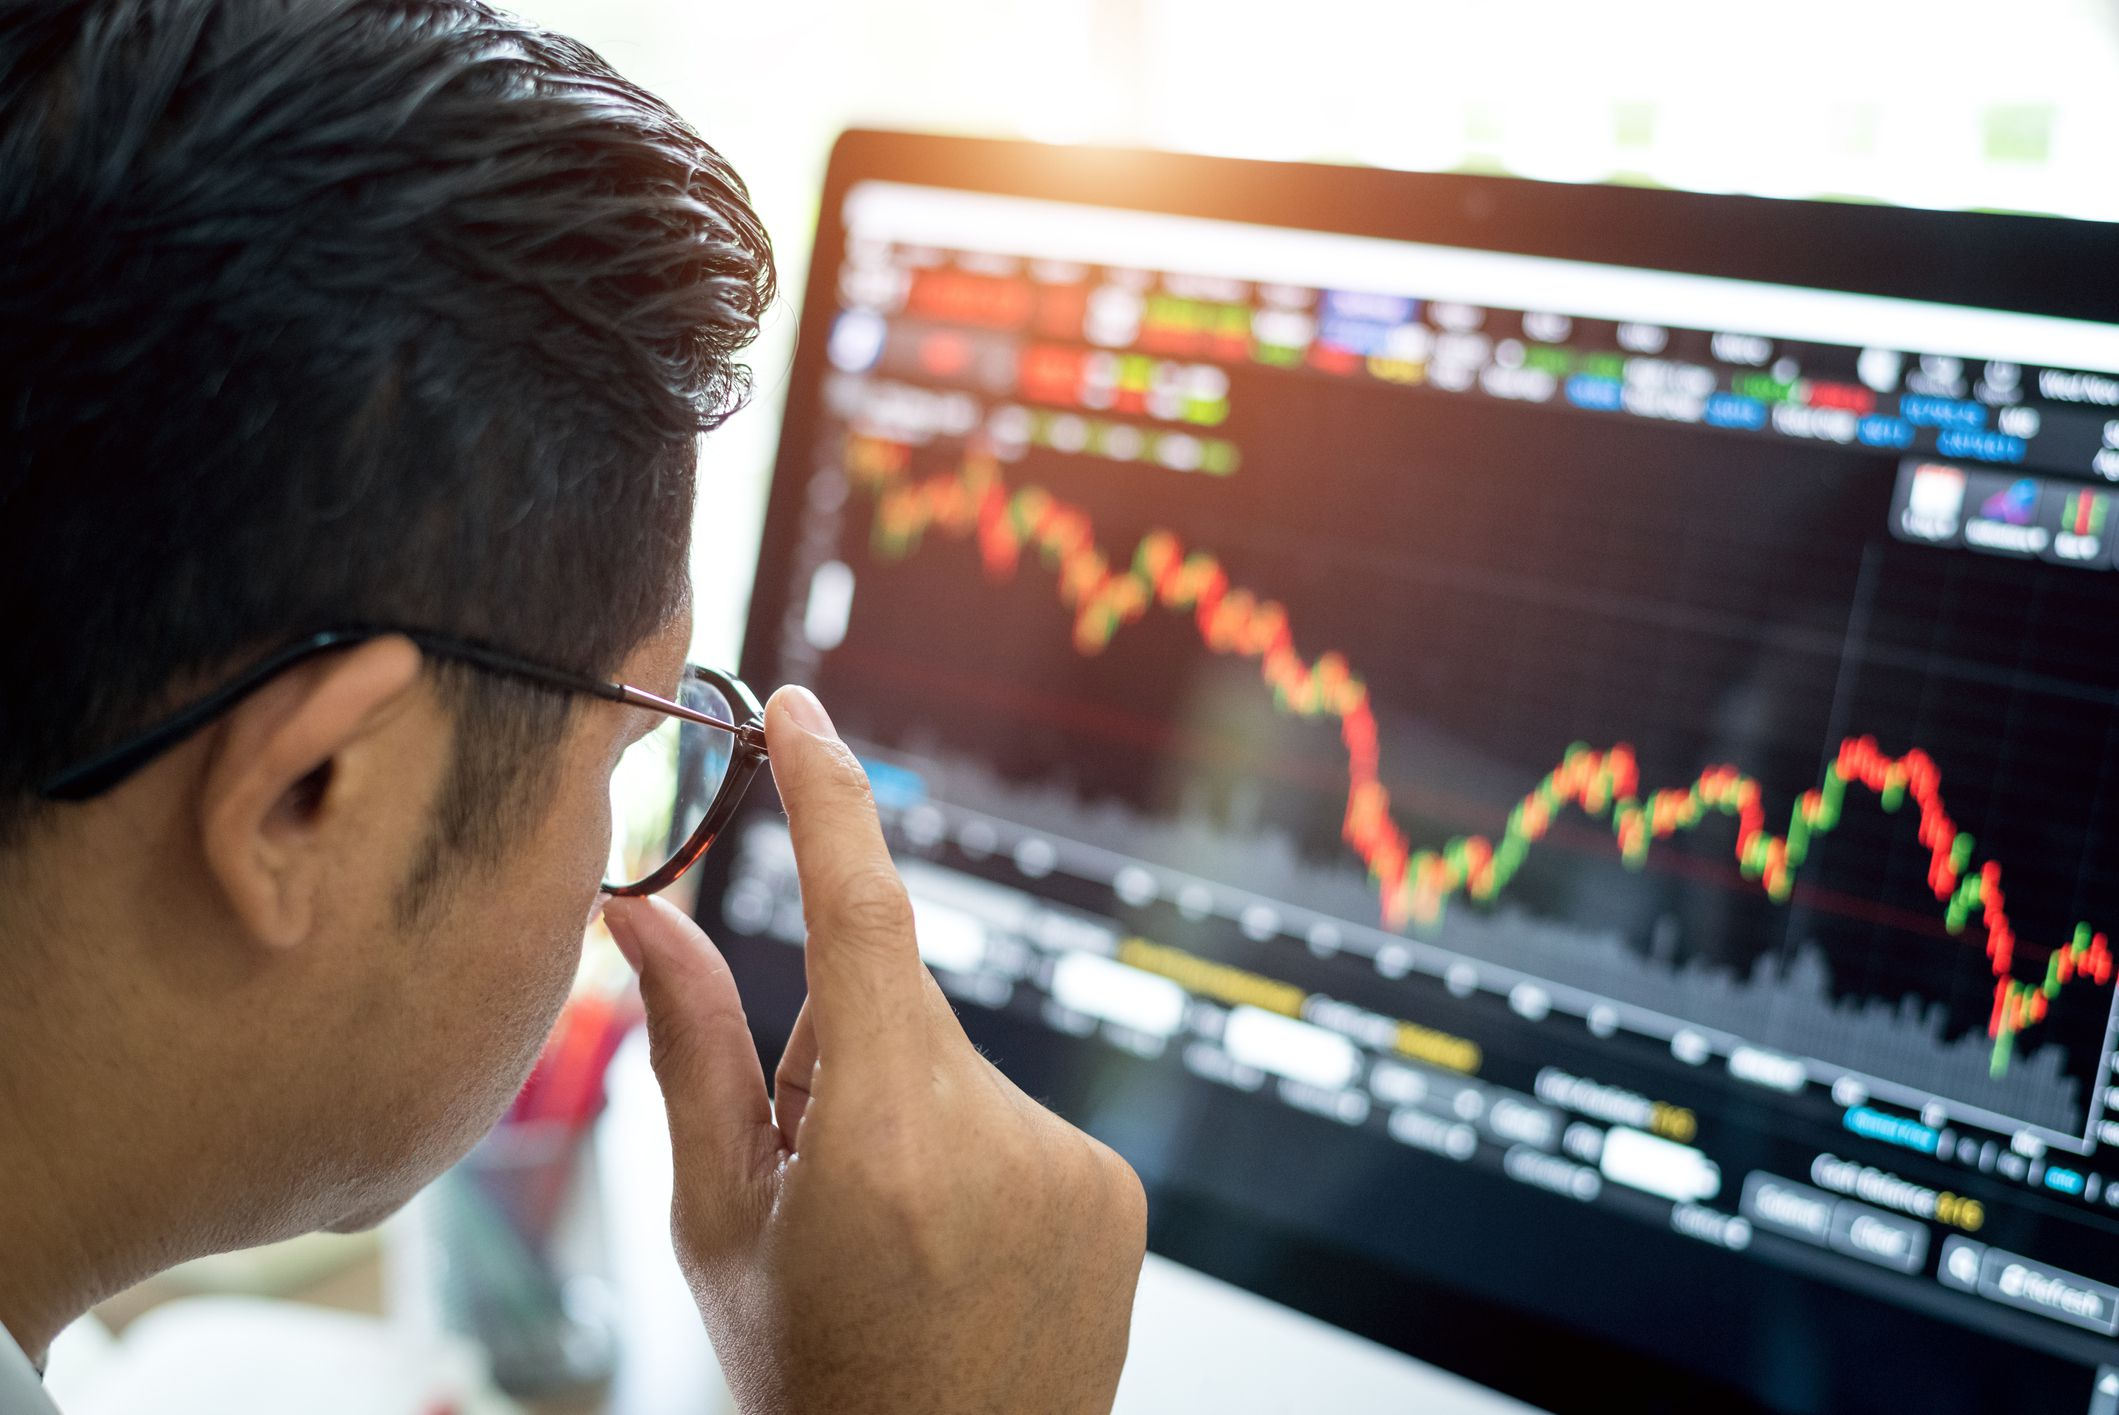 Market Price per Share: What Is It?